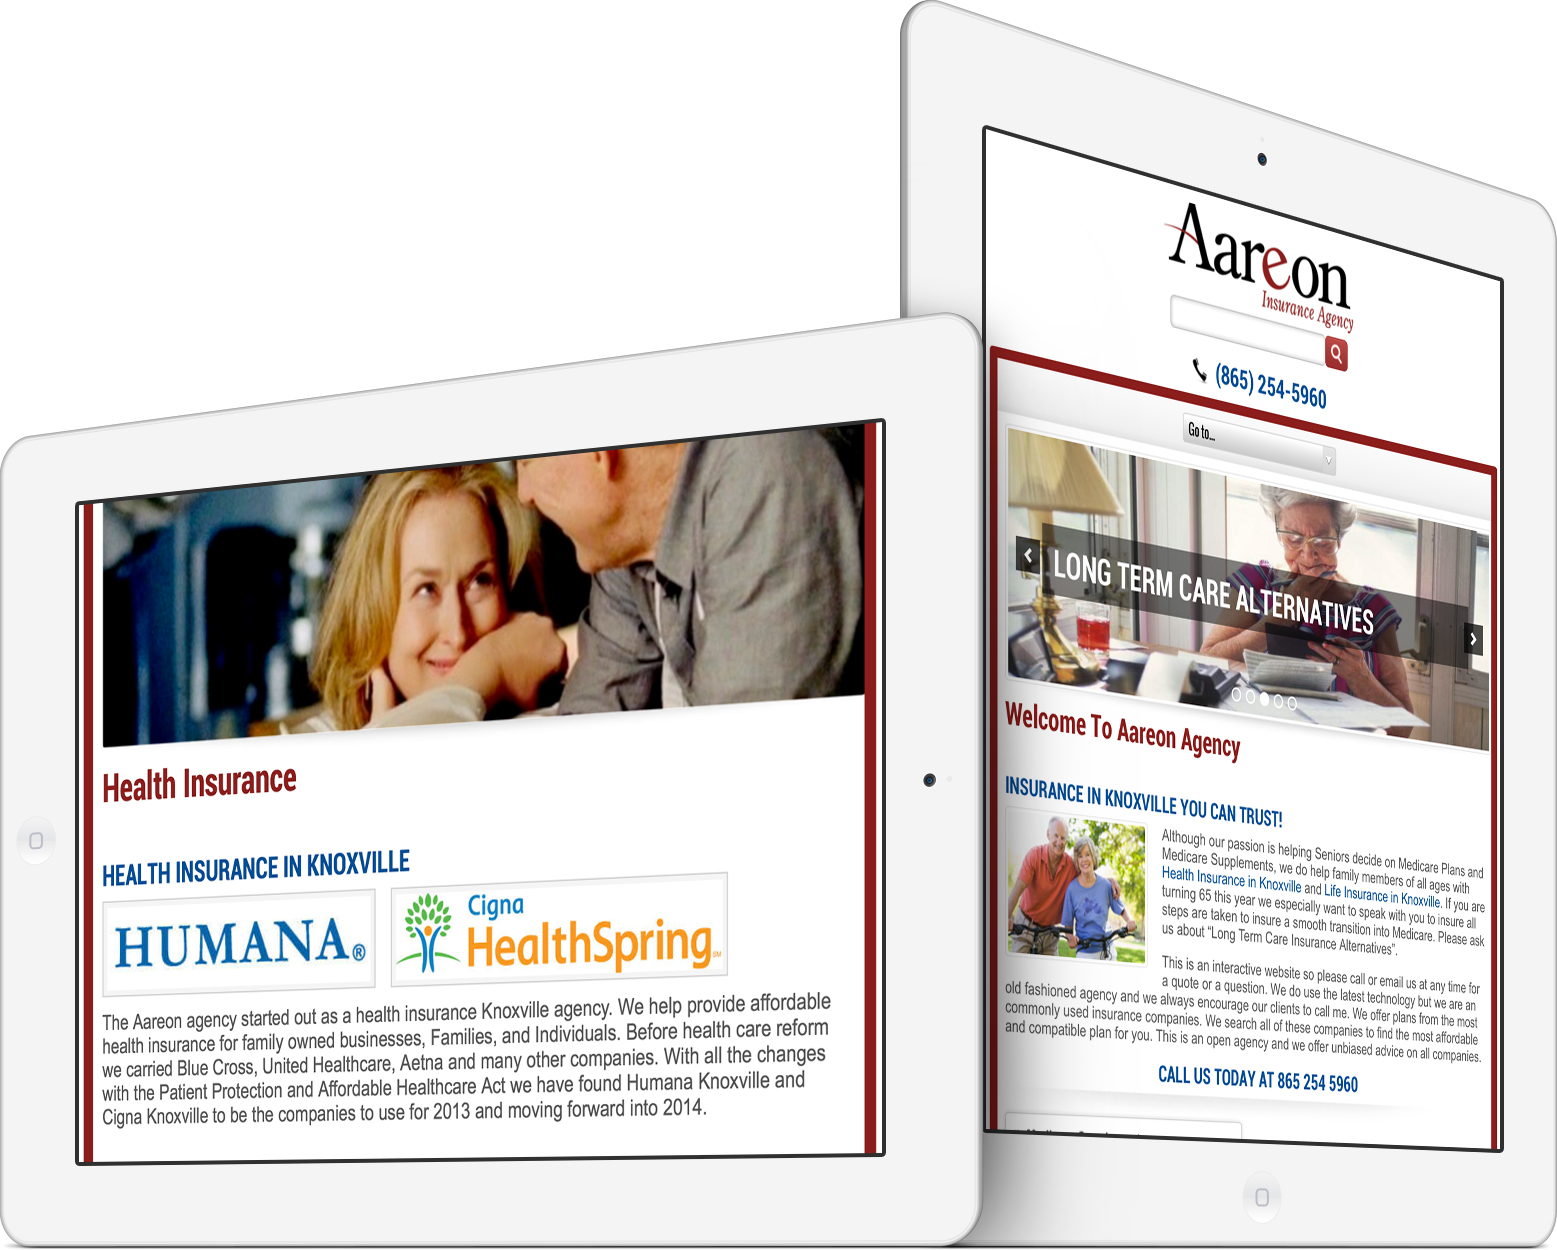 Aareon Insurance Agency on an iPad